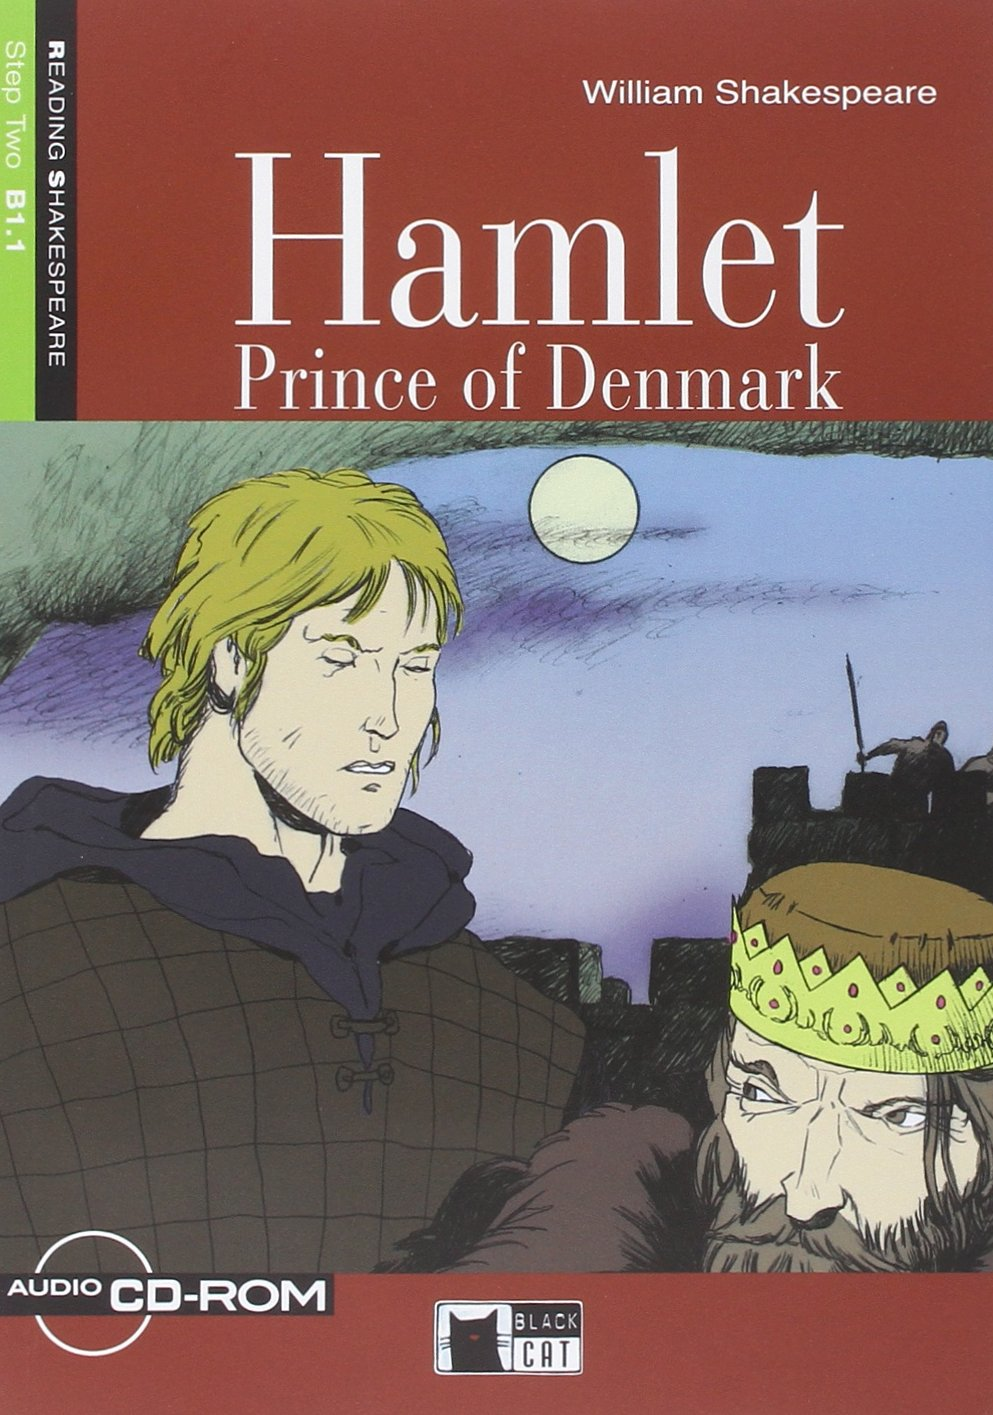 Hamlet NEd +R new original ii0309 warranty for two year